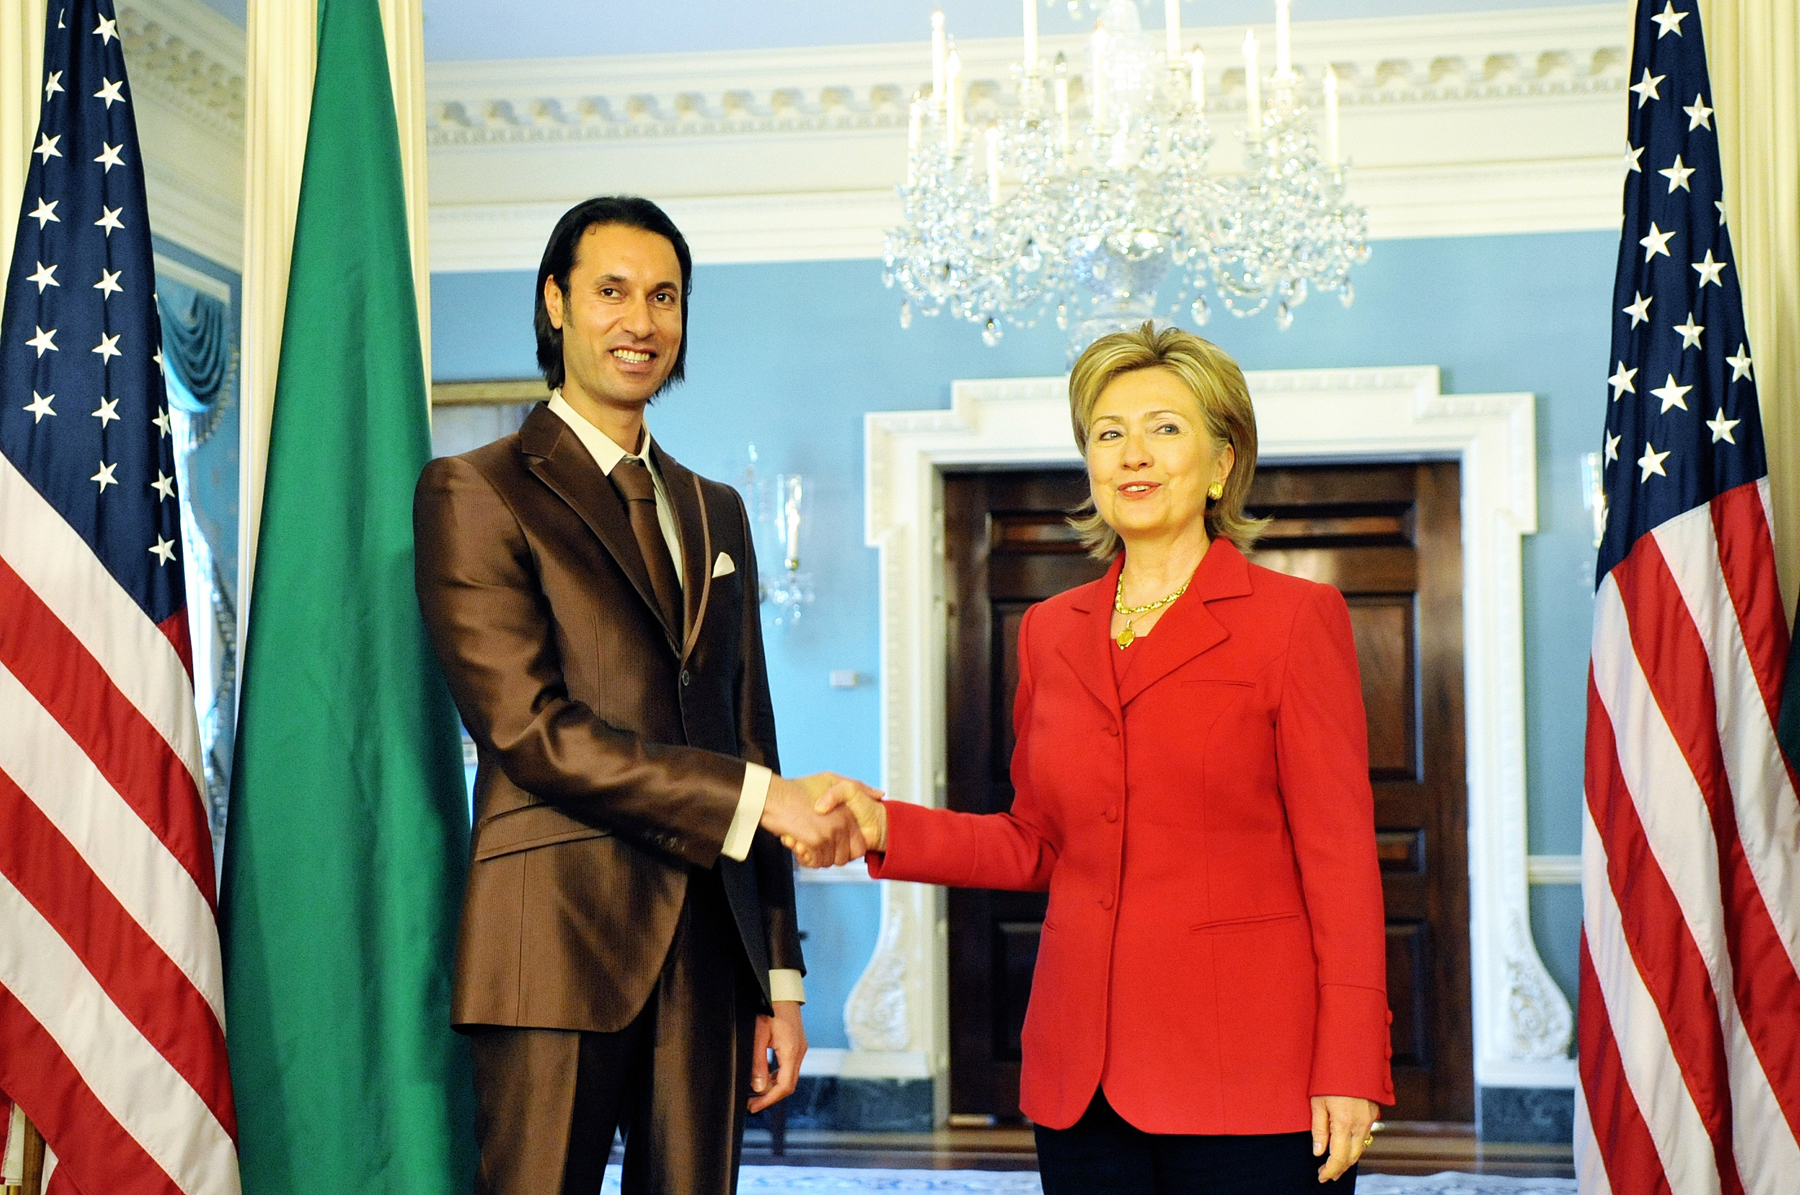 Gaddafi's son Mutassim with U.S. Secretary of State Hillary Clinton in 2009